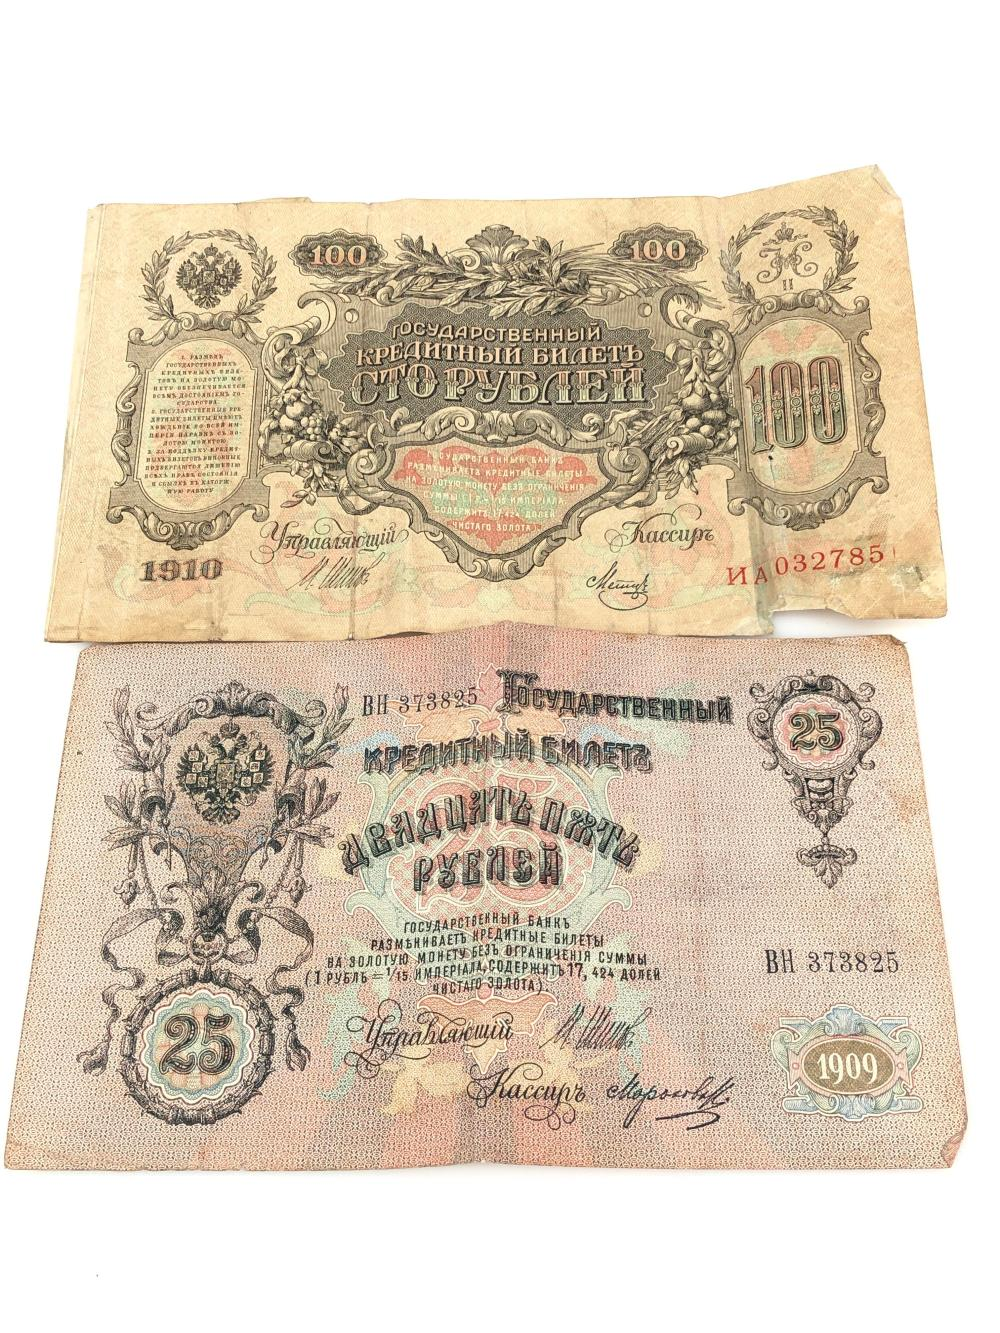 RUSSIAN EMPIRE BANKNOTE 1910 YEAR 100 RUBLES USED FAIR CONDITION